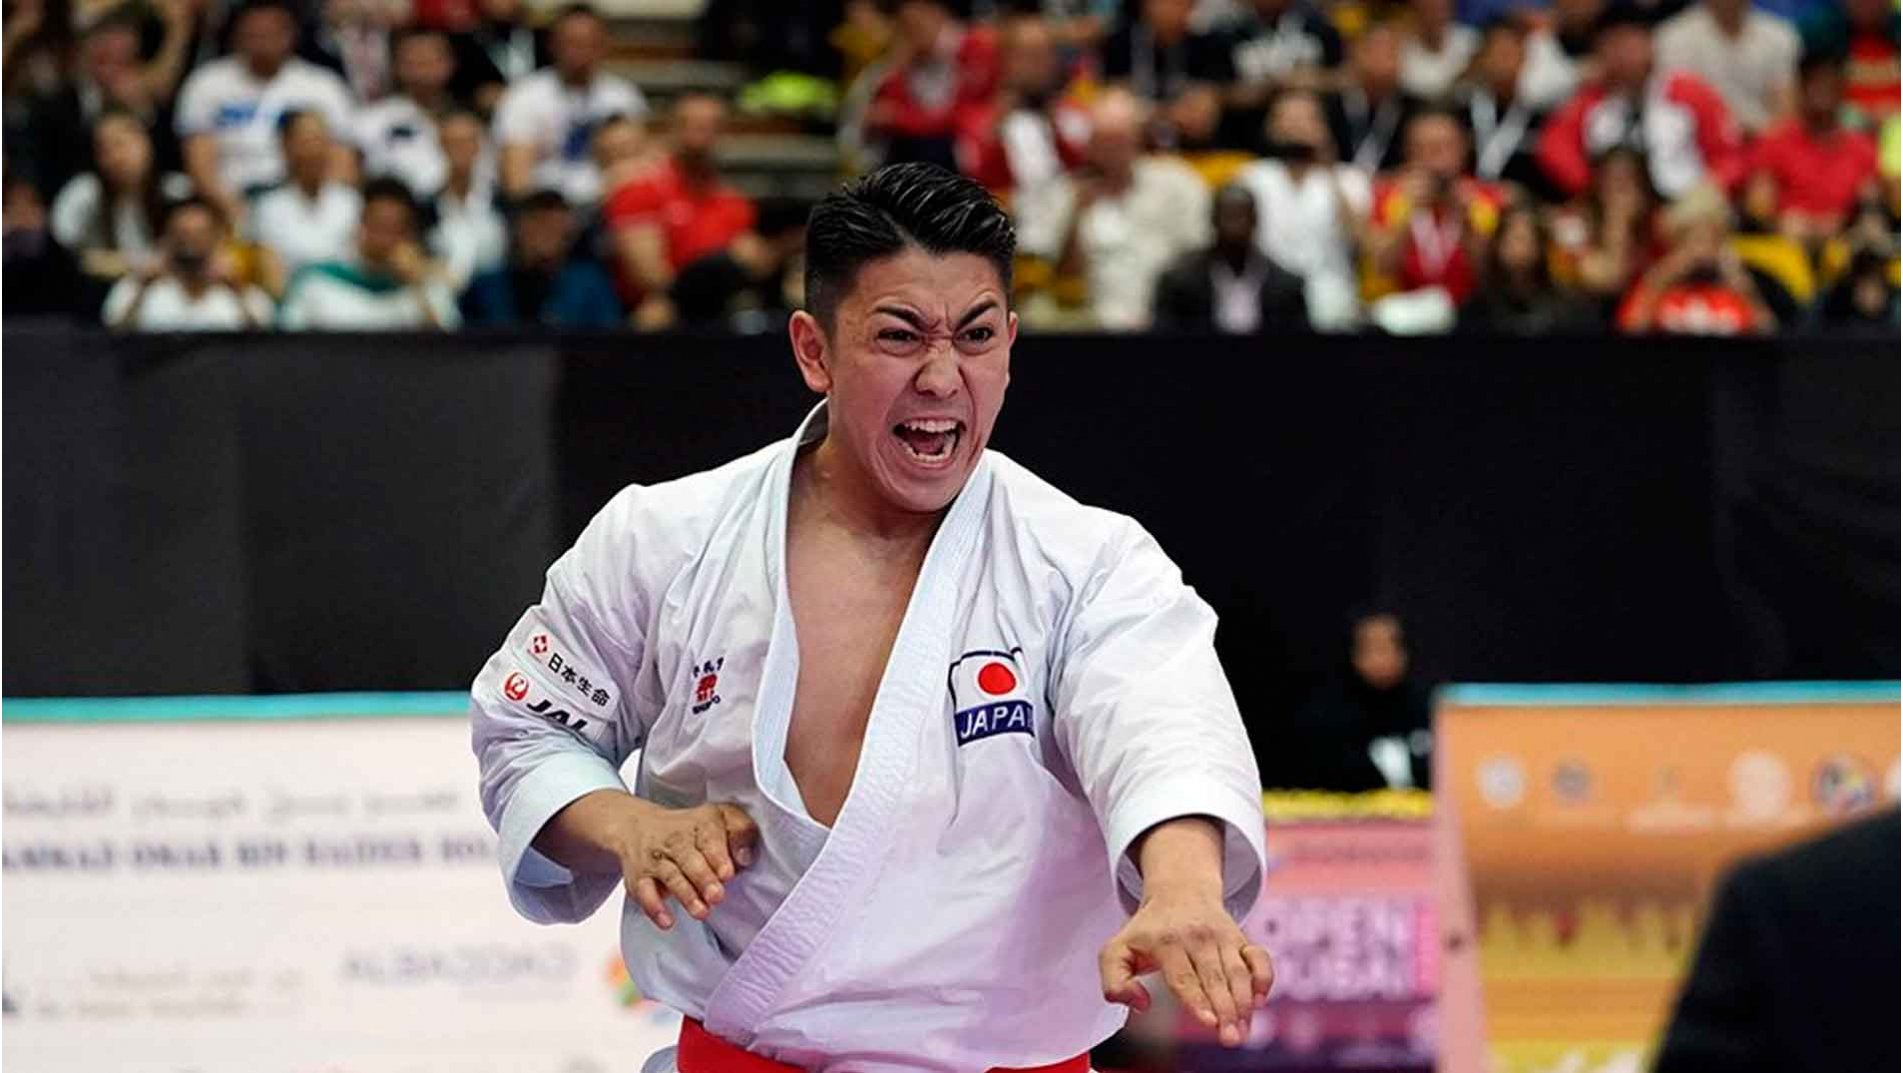 Top karatekas set for gold as thrilling second day of #Karate1Dubai concludes